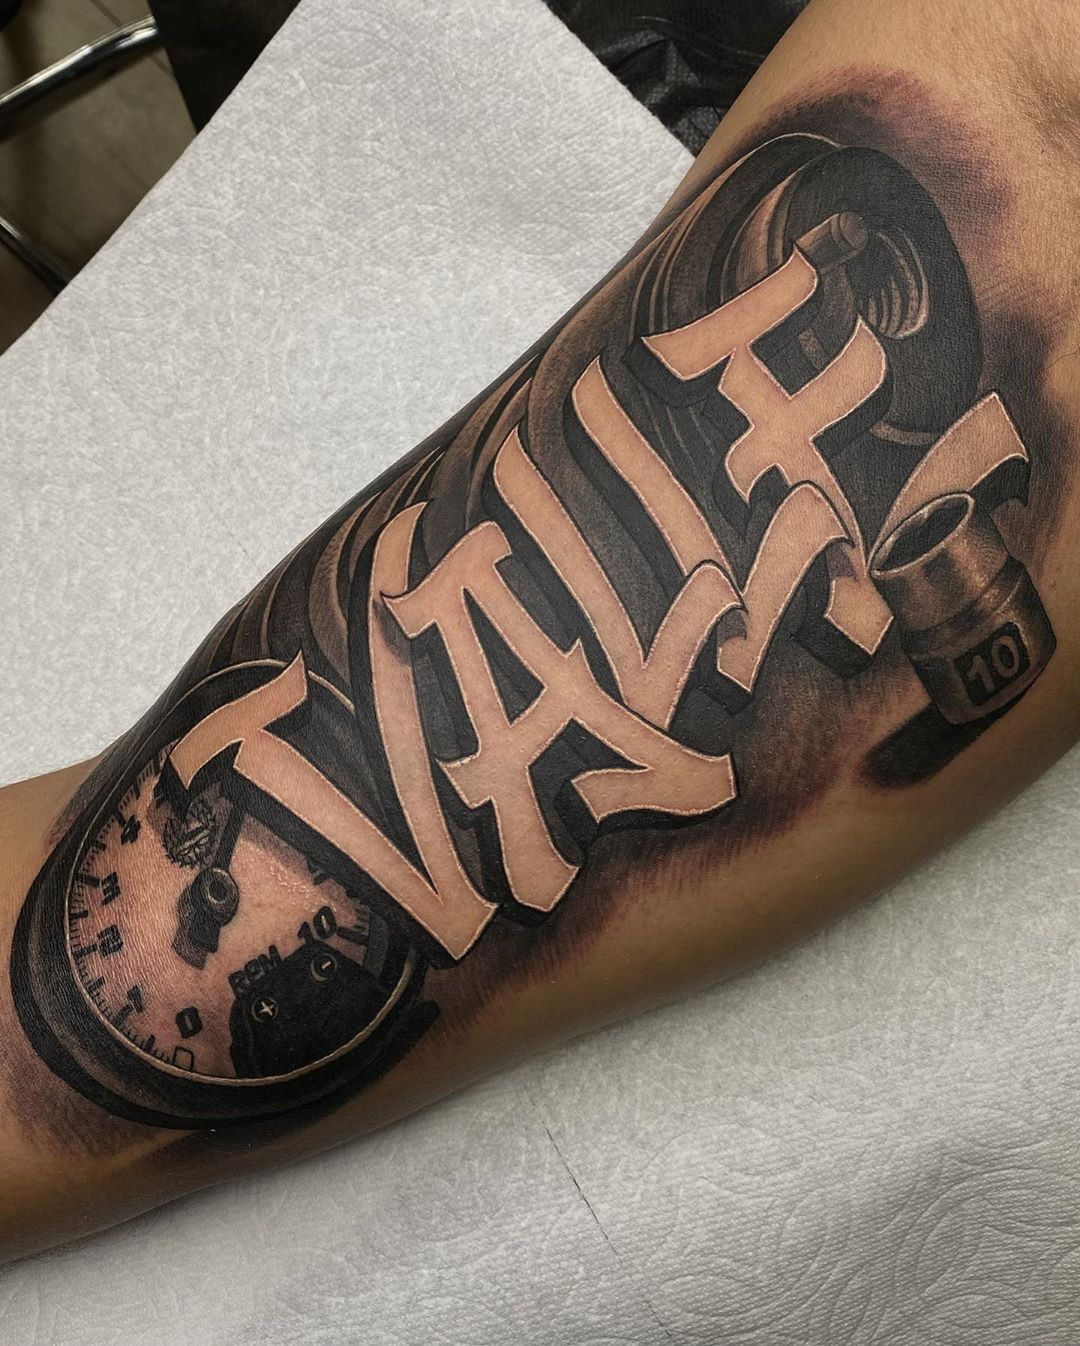 lettering-tatto-style-arm